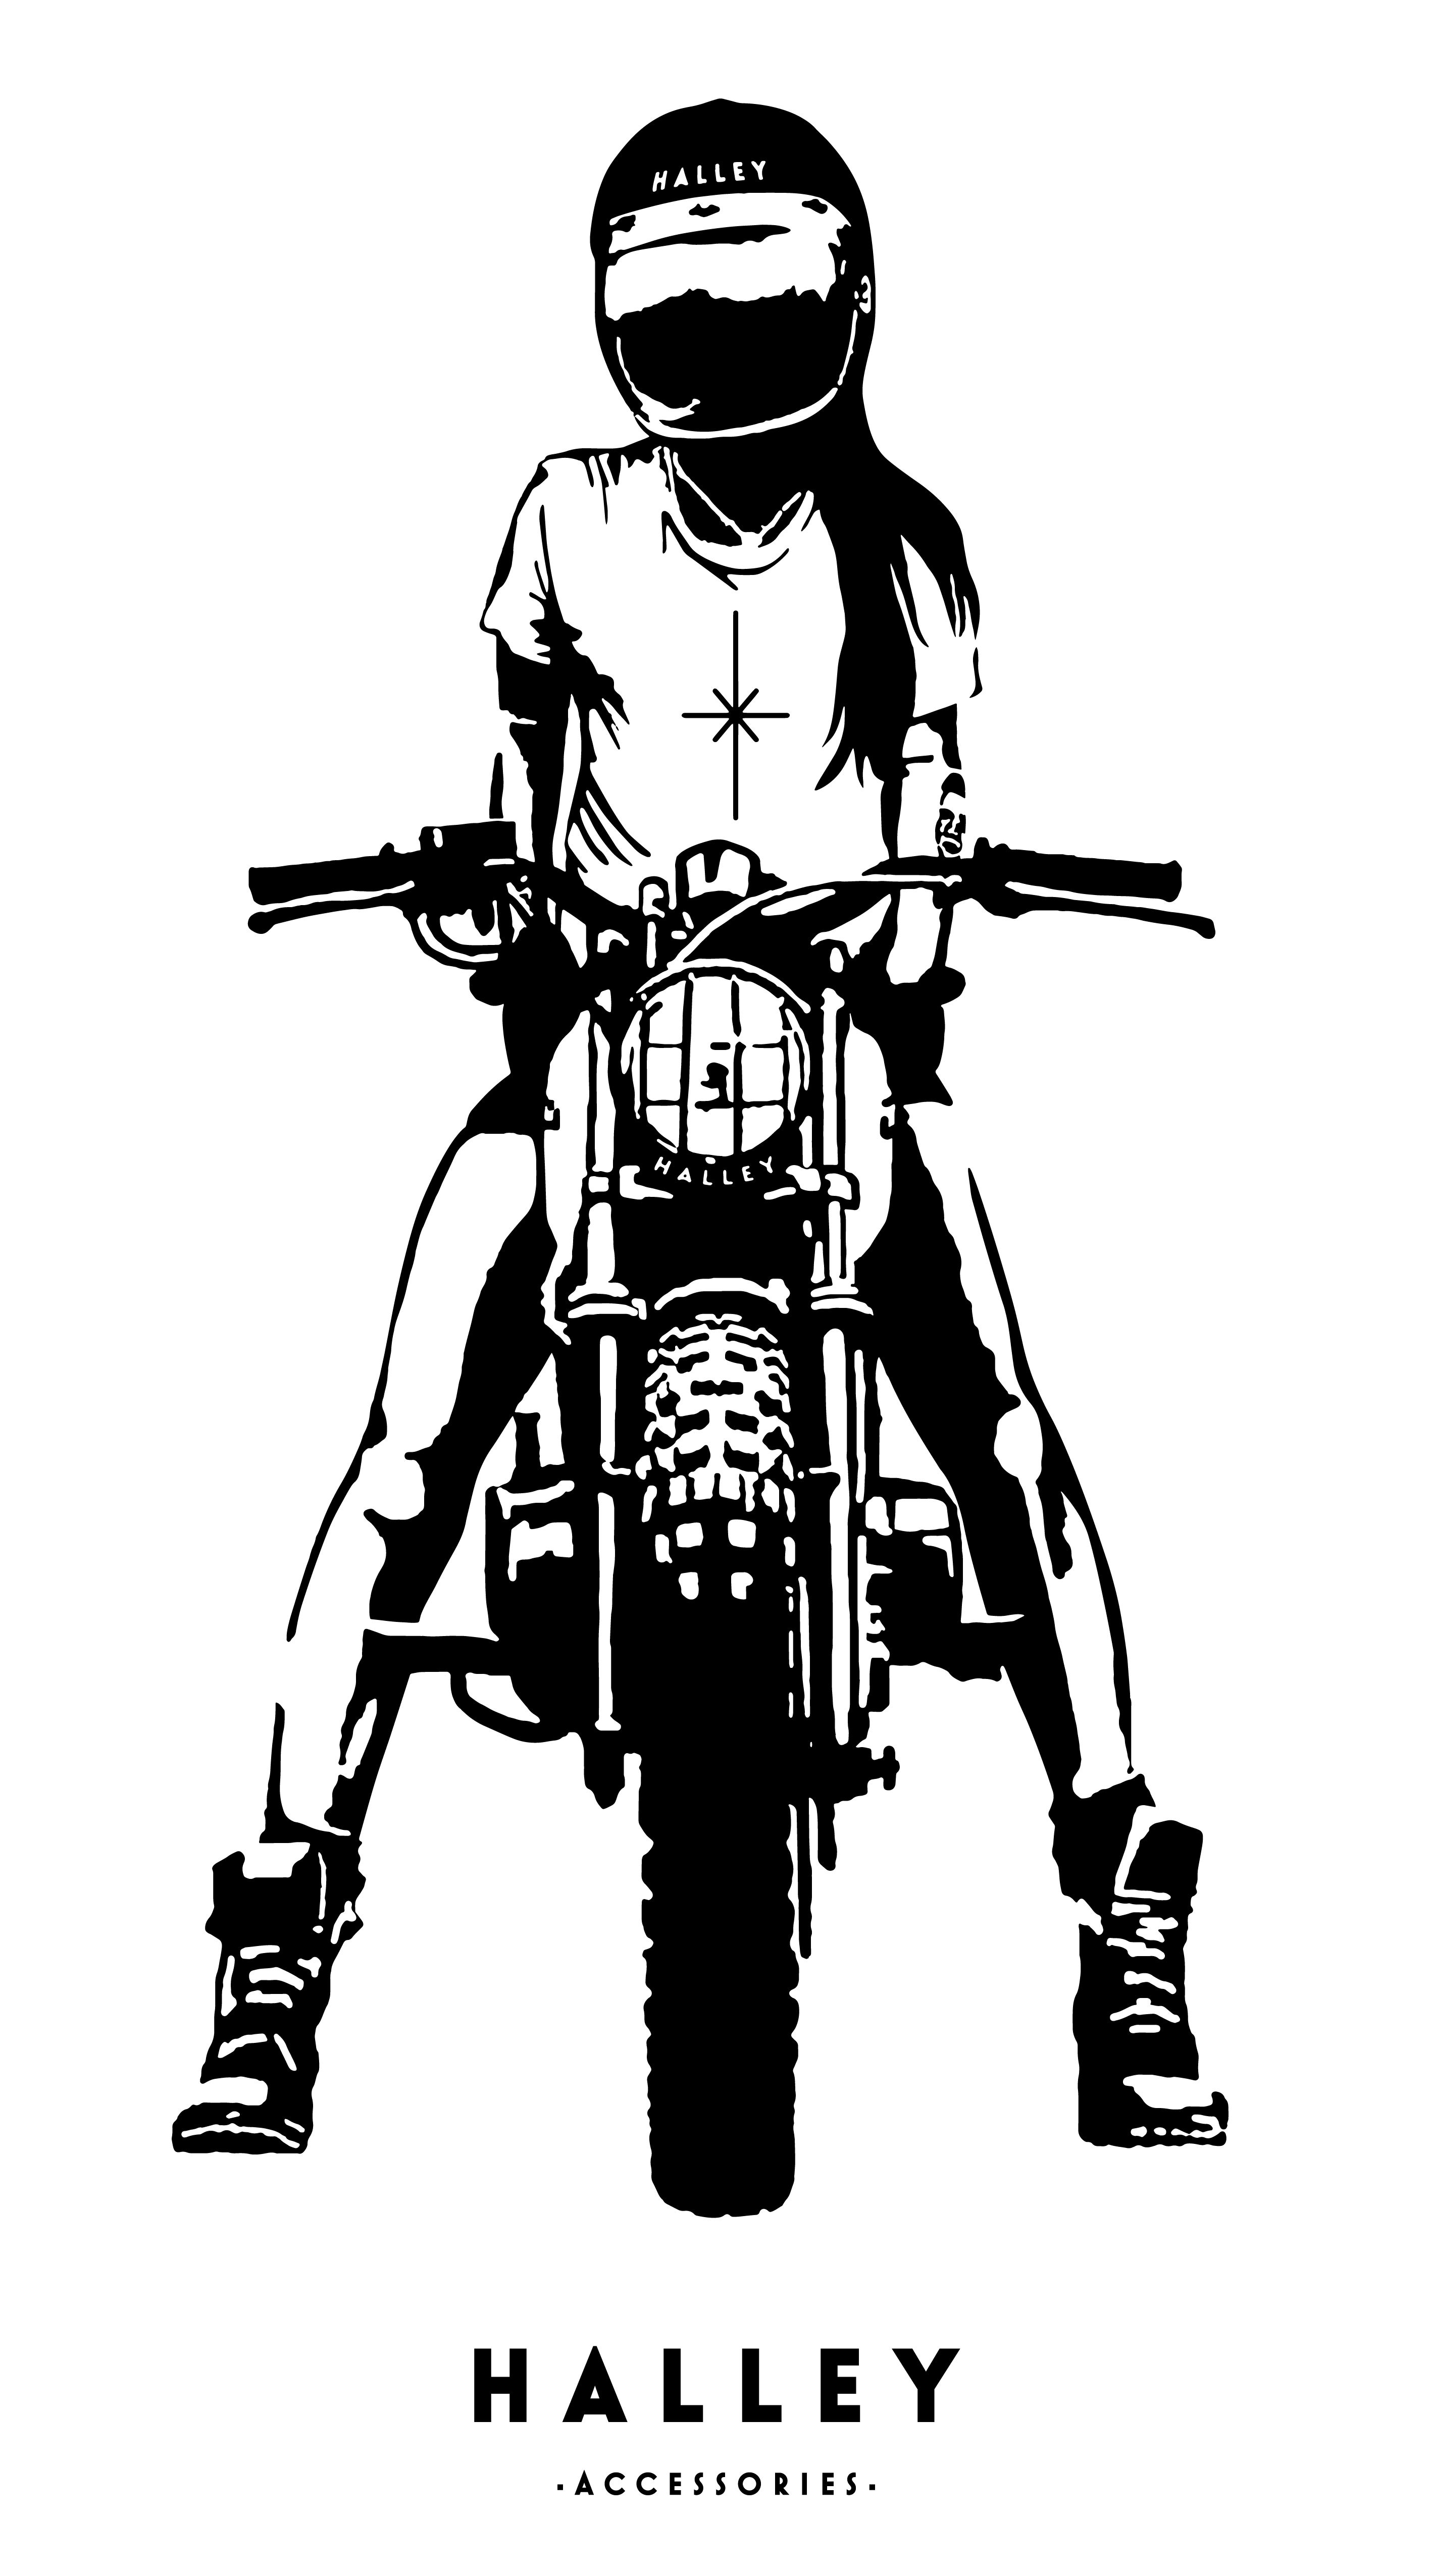 Girl Rider By Halley Accessories Scrambler Cafe Racer